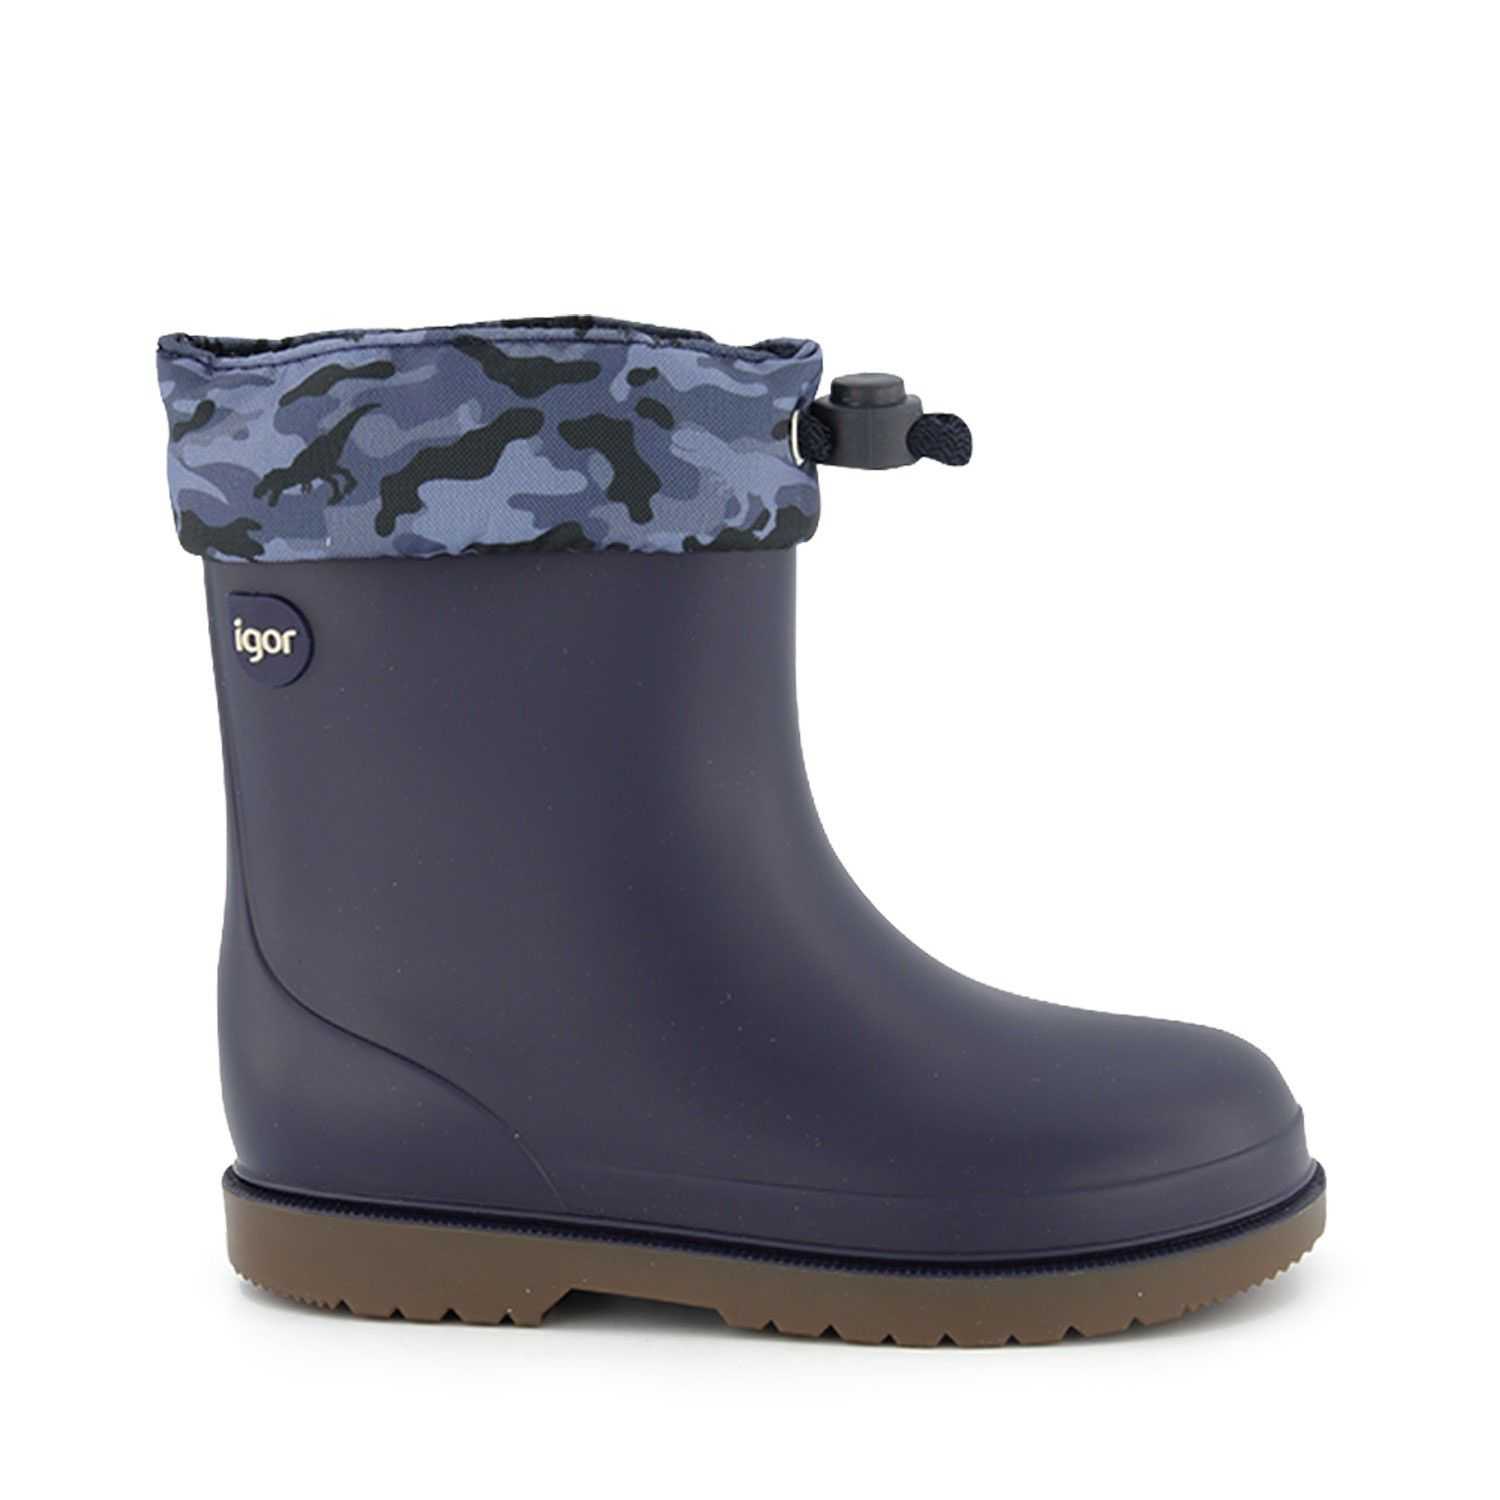 Picture of Igor W10212 kids boots navy